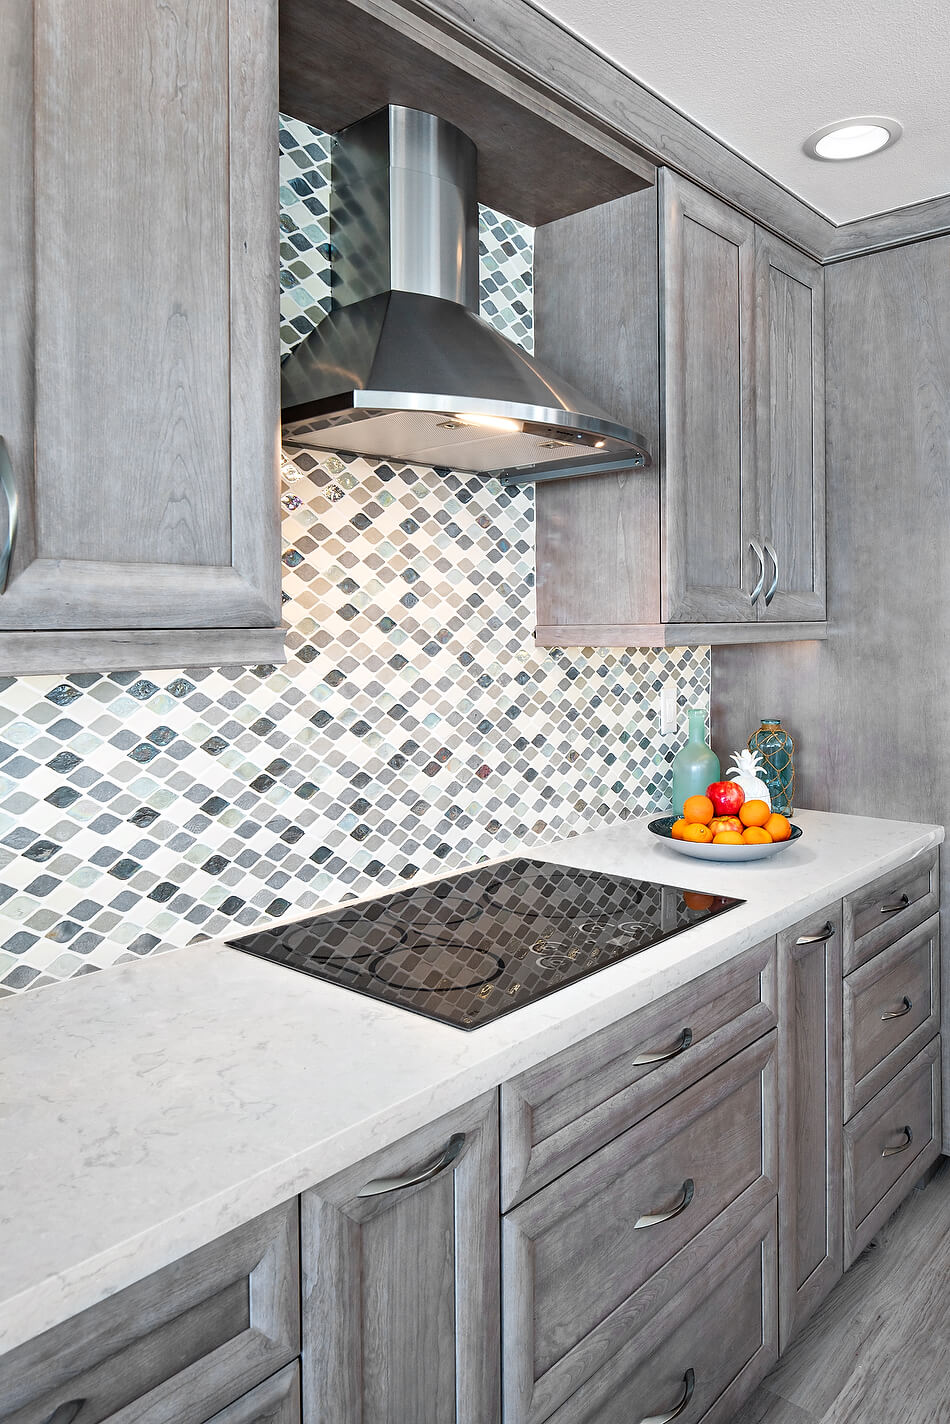 Geometric patterns in kitchen design trends for 2020